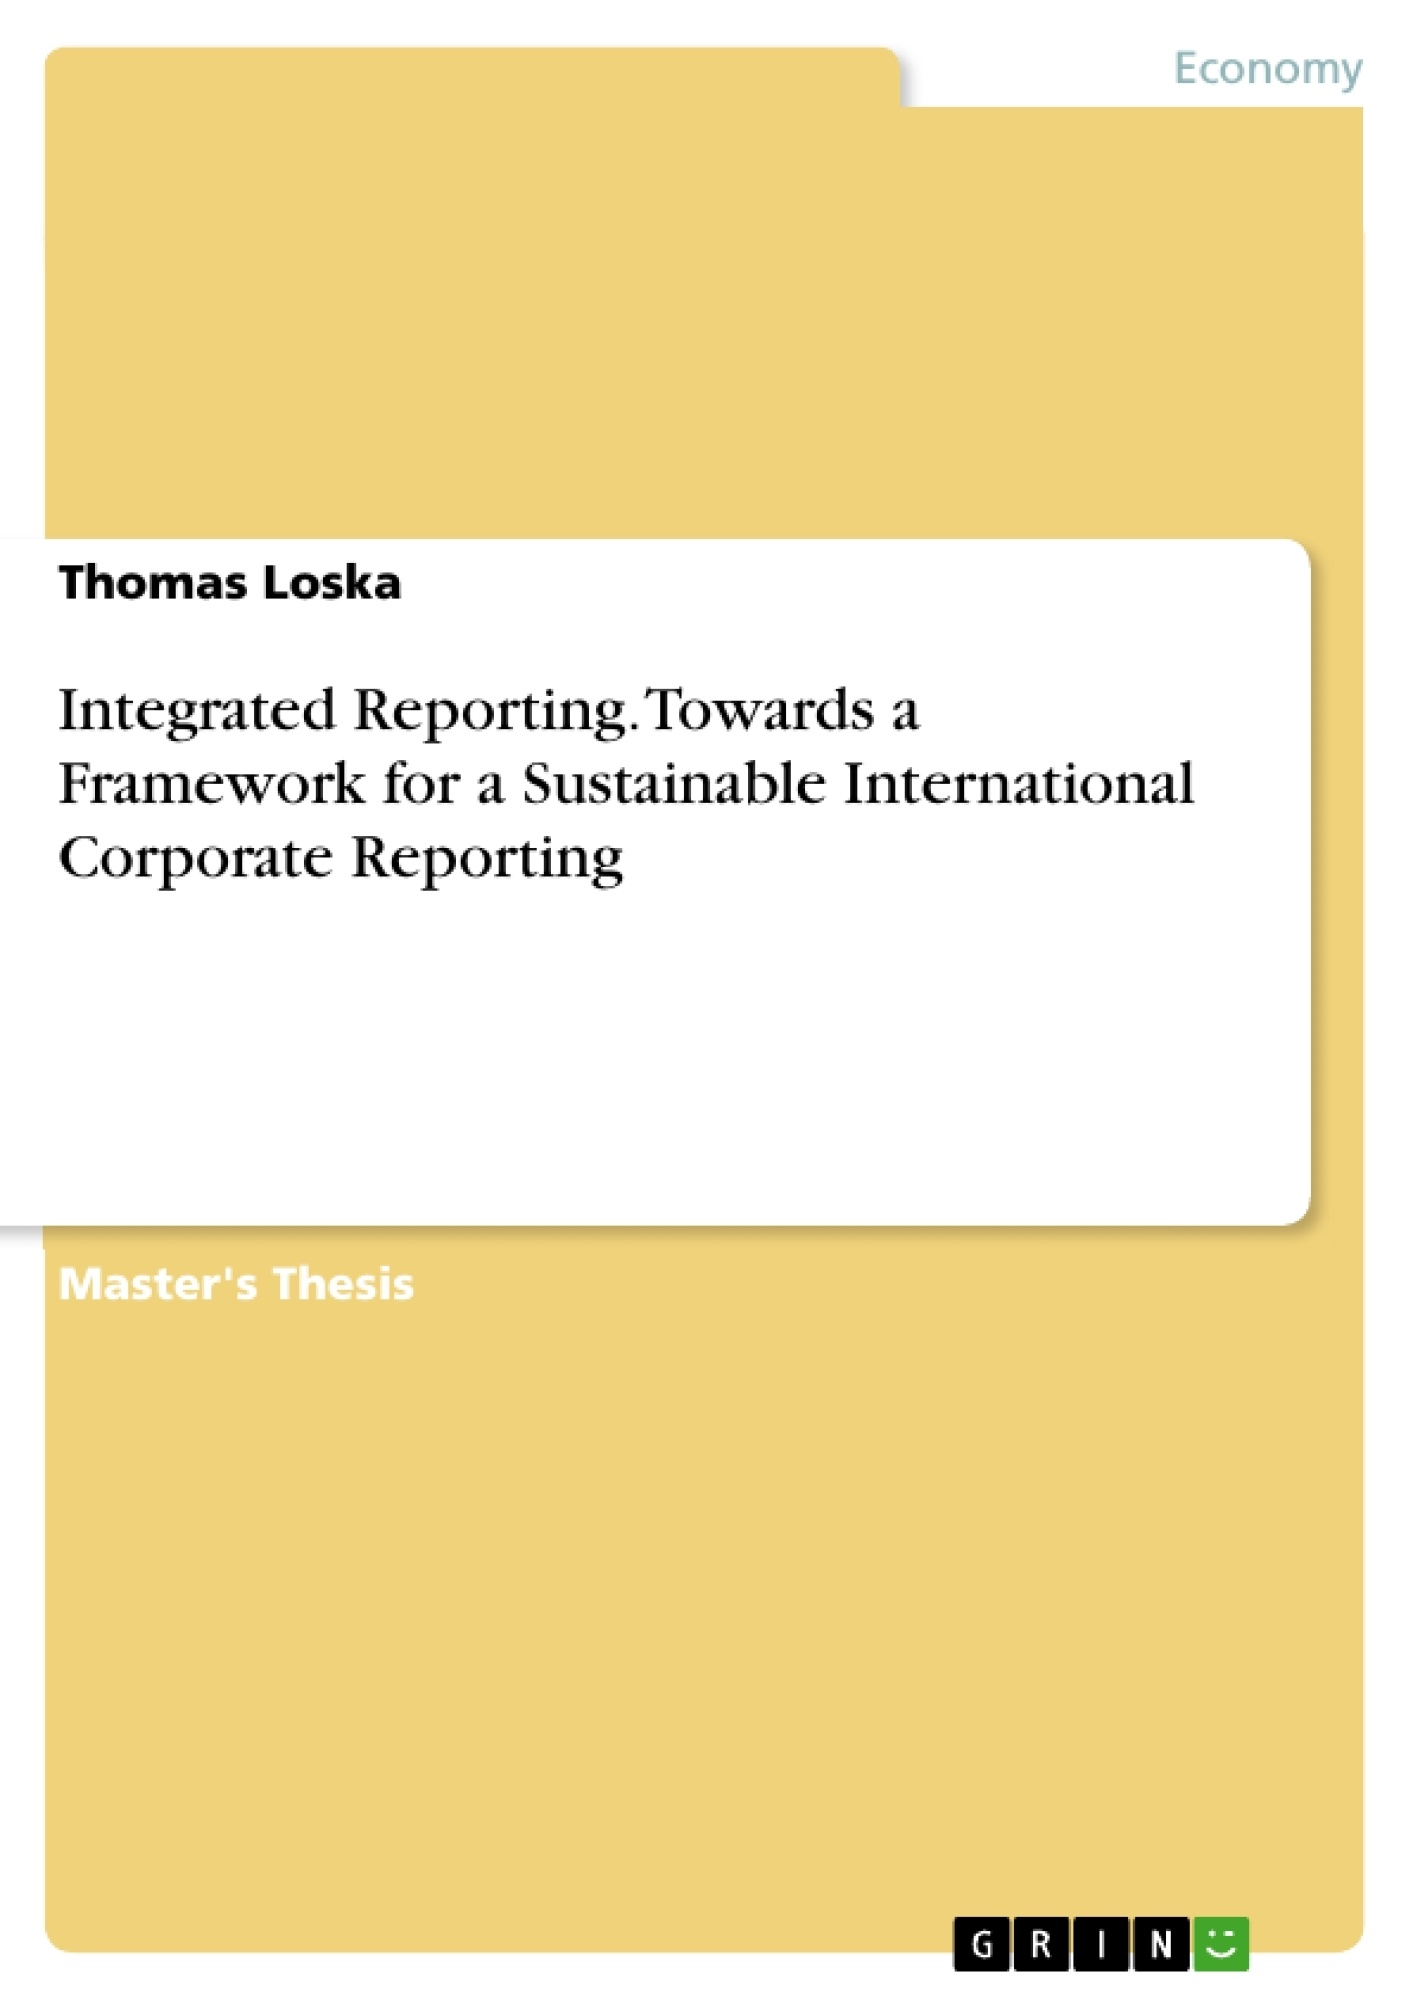 Title: Integrated Reporting. Towards a Framework for a Sustainable International Corporate Reporting